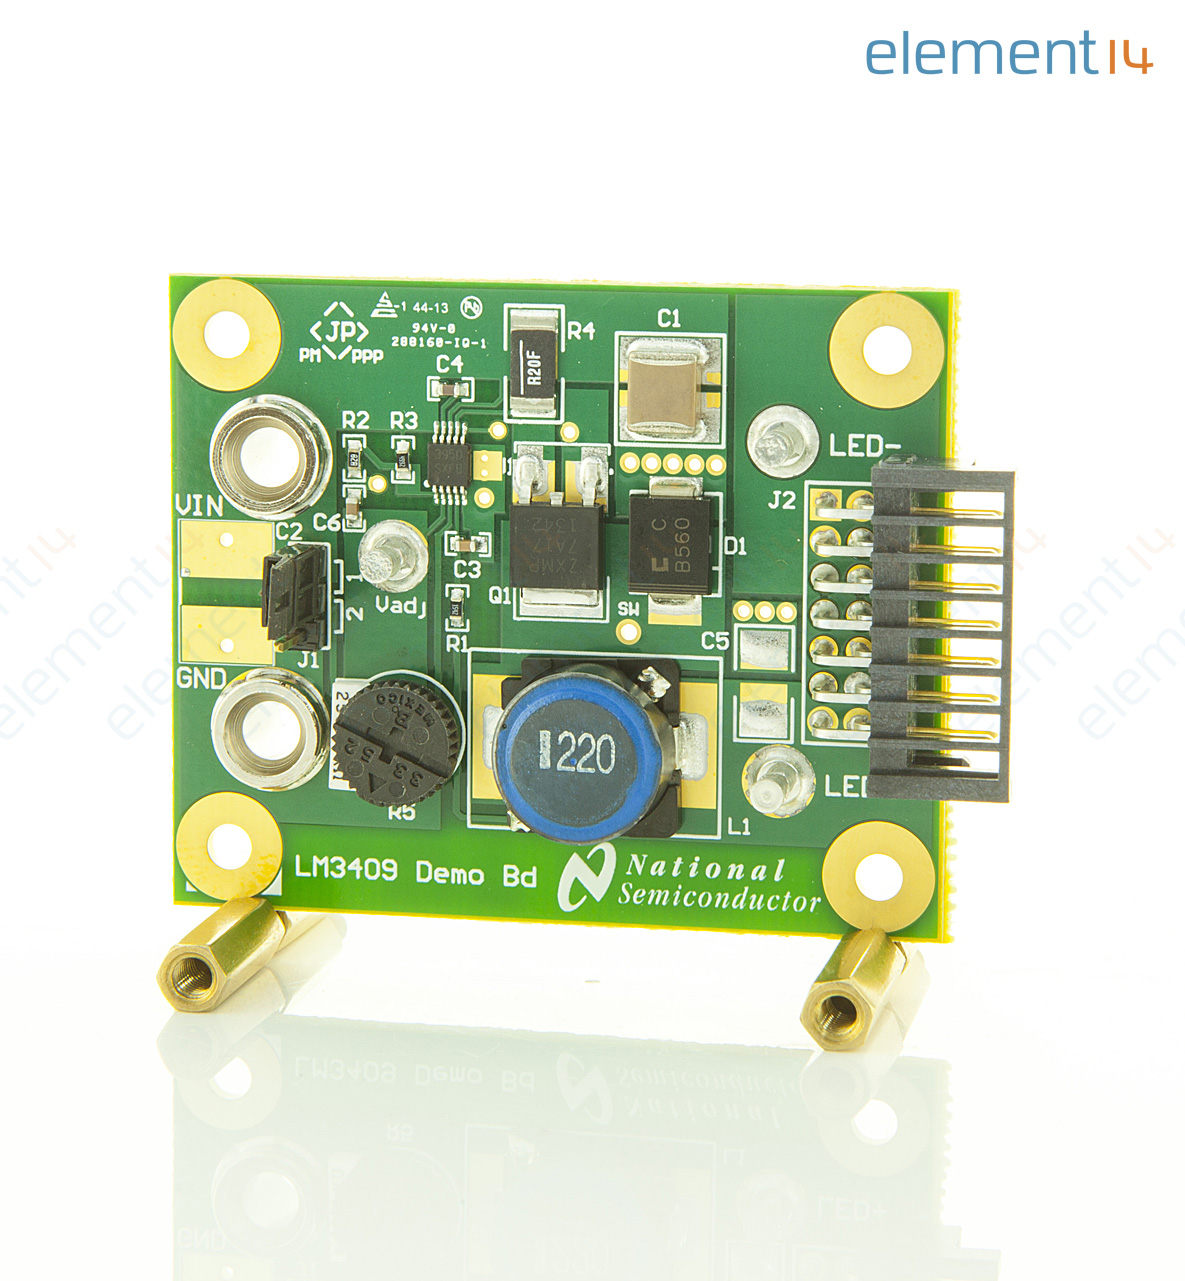 Lm3409eval Texas Instruments Lm3409 Pwm Led Driver Evaluation Board Electronics Learning Circuits Webonly Products Technology Add To Compare